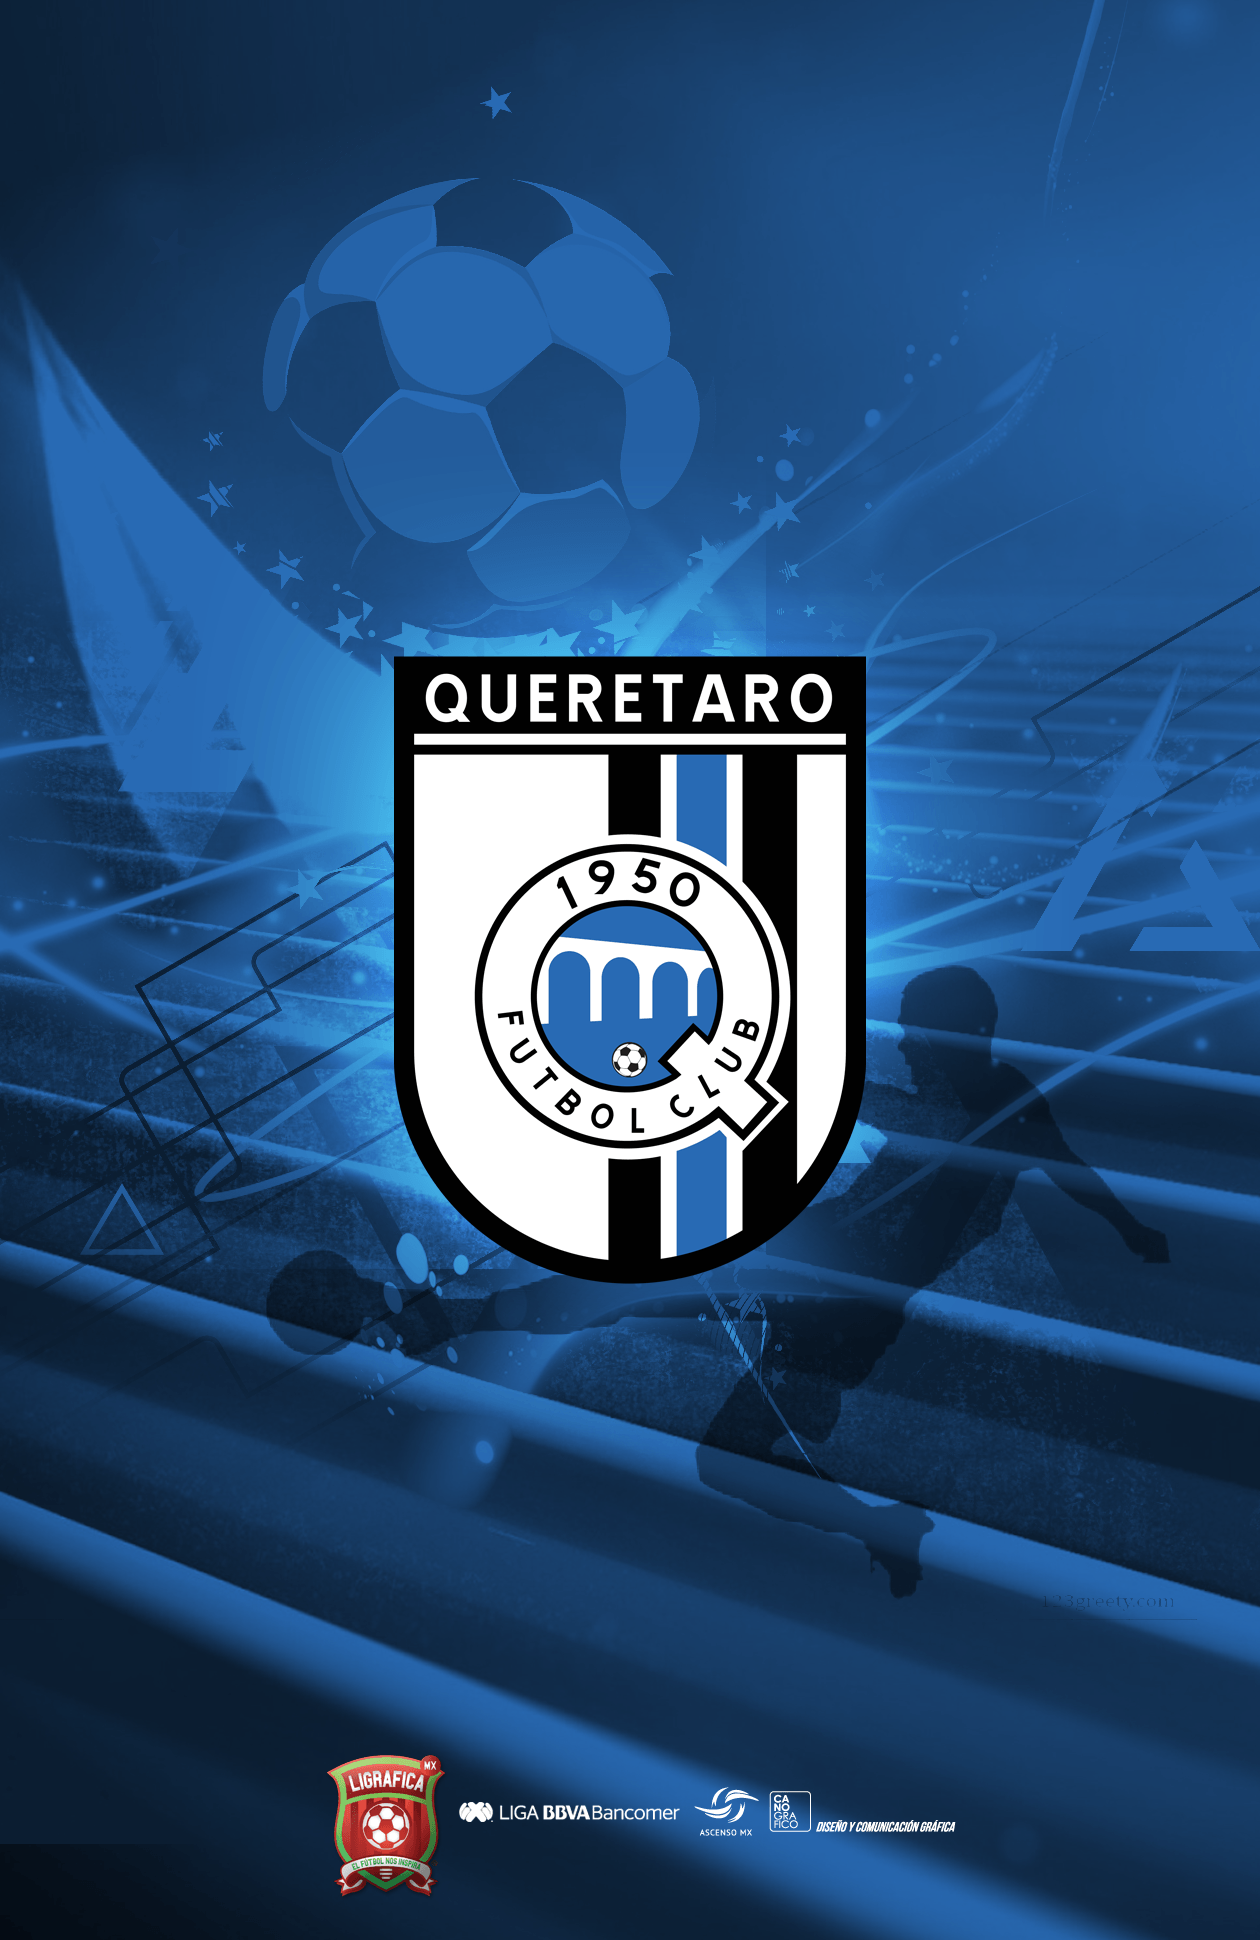 Queretaro F.C. Ronaldinho's current team. The team has never won a